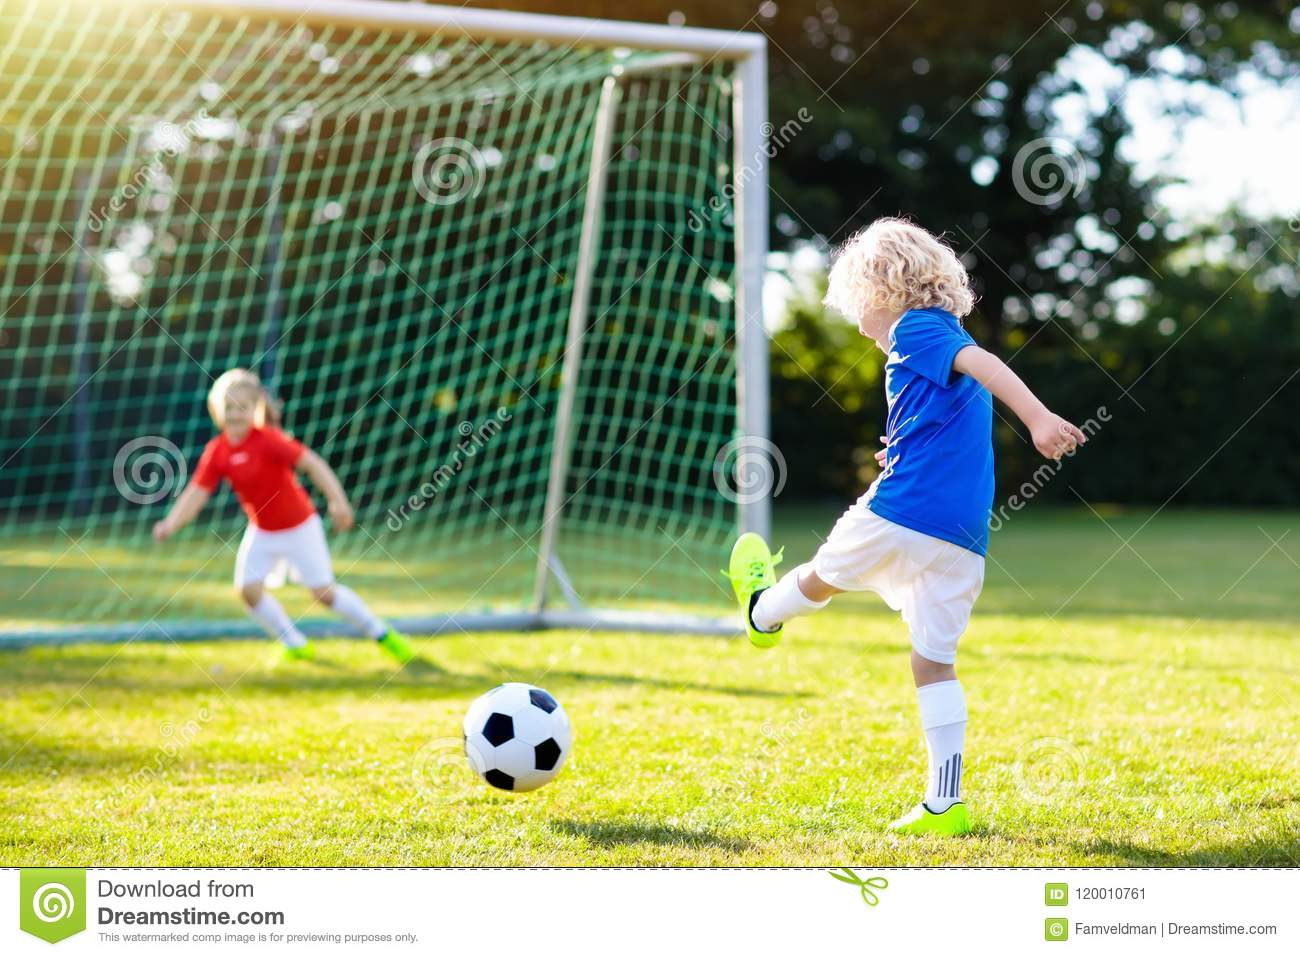 282f5e7c5 Children score a goal during soccer game. Little boy kicking ball. Running  child in team jersey and cleats. School football club. Sports training for  young ...